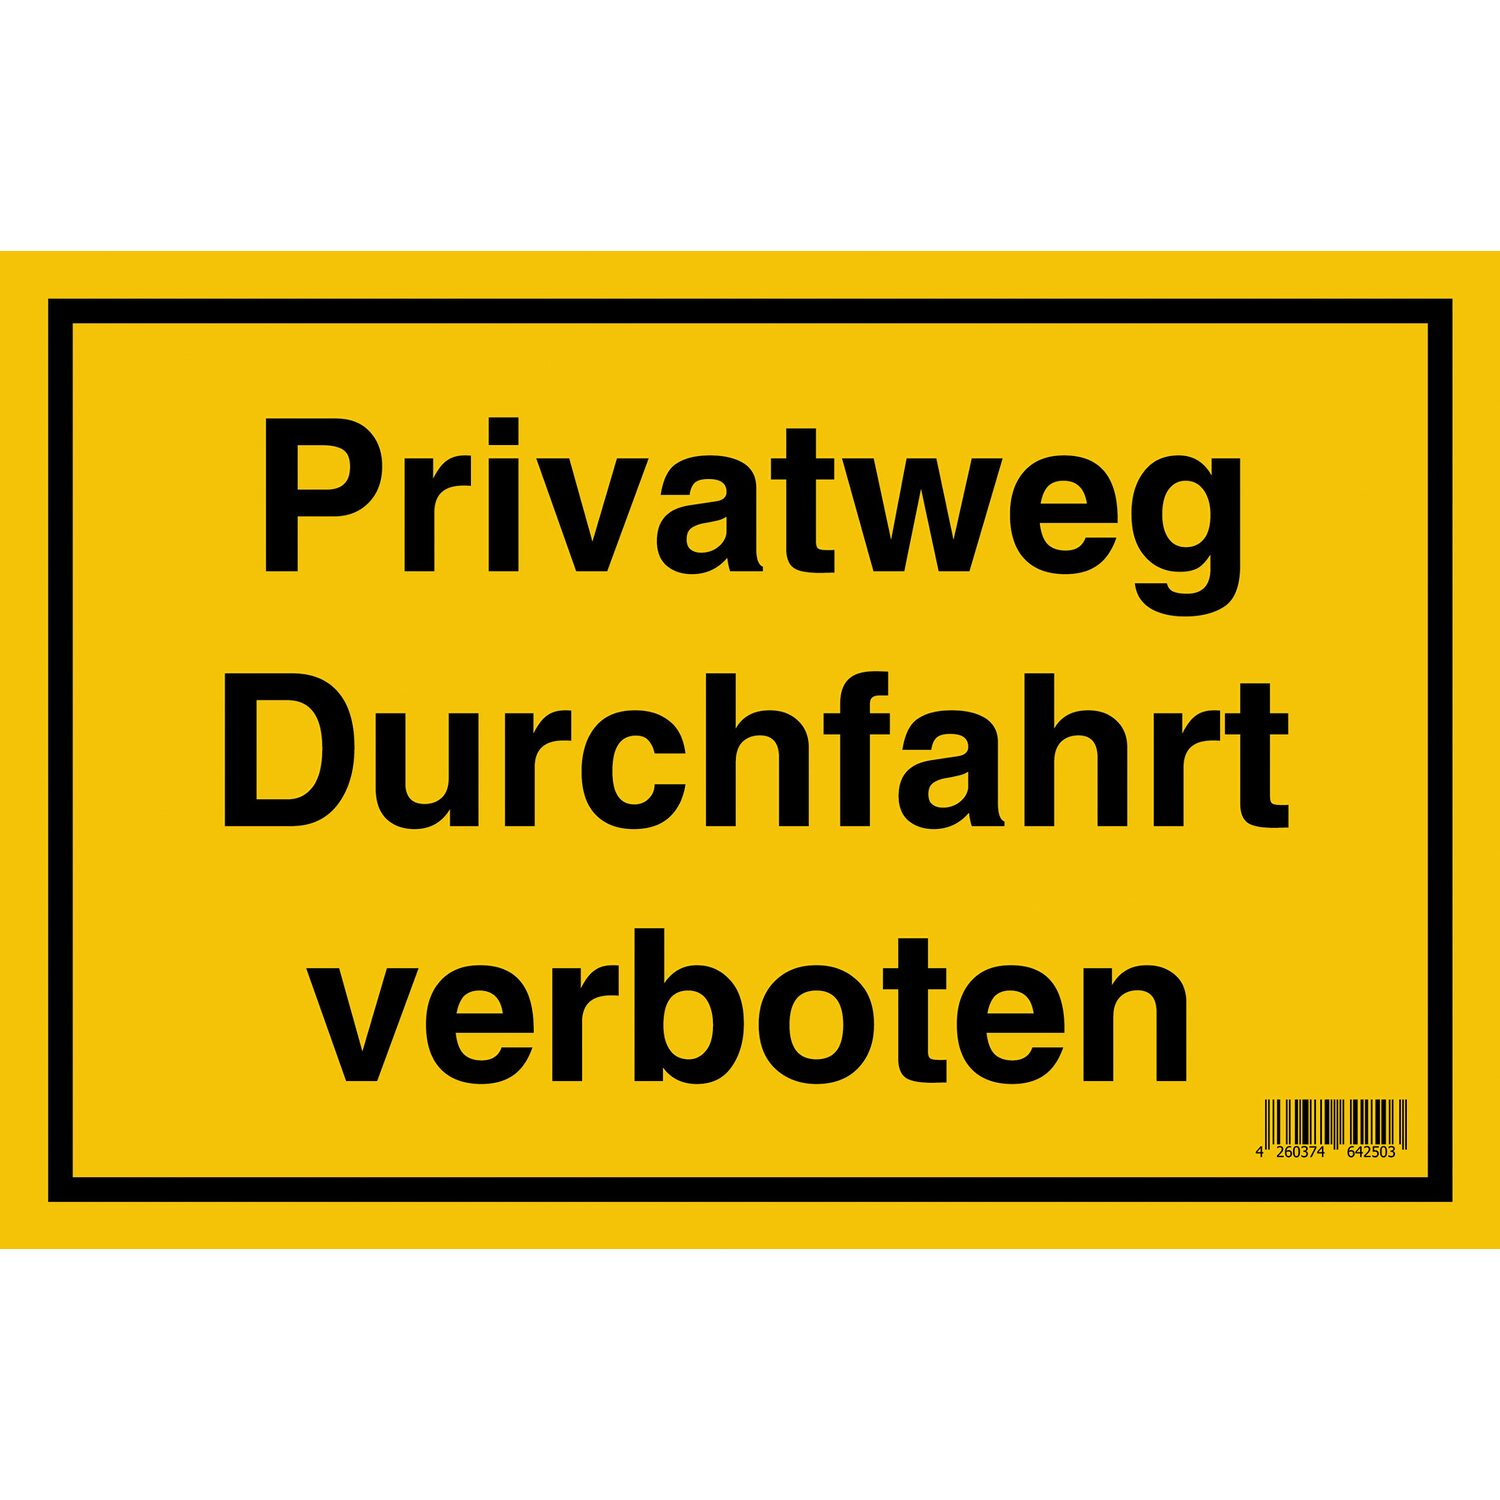 schild privatweg durchfahrt verboten 20 cm x 30 cm kaufen bei obi. Black Bedroom Furniture Sets. Home Design Ideas